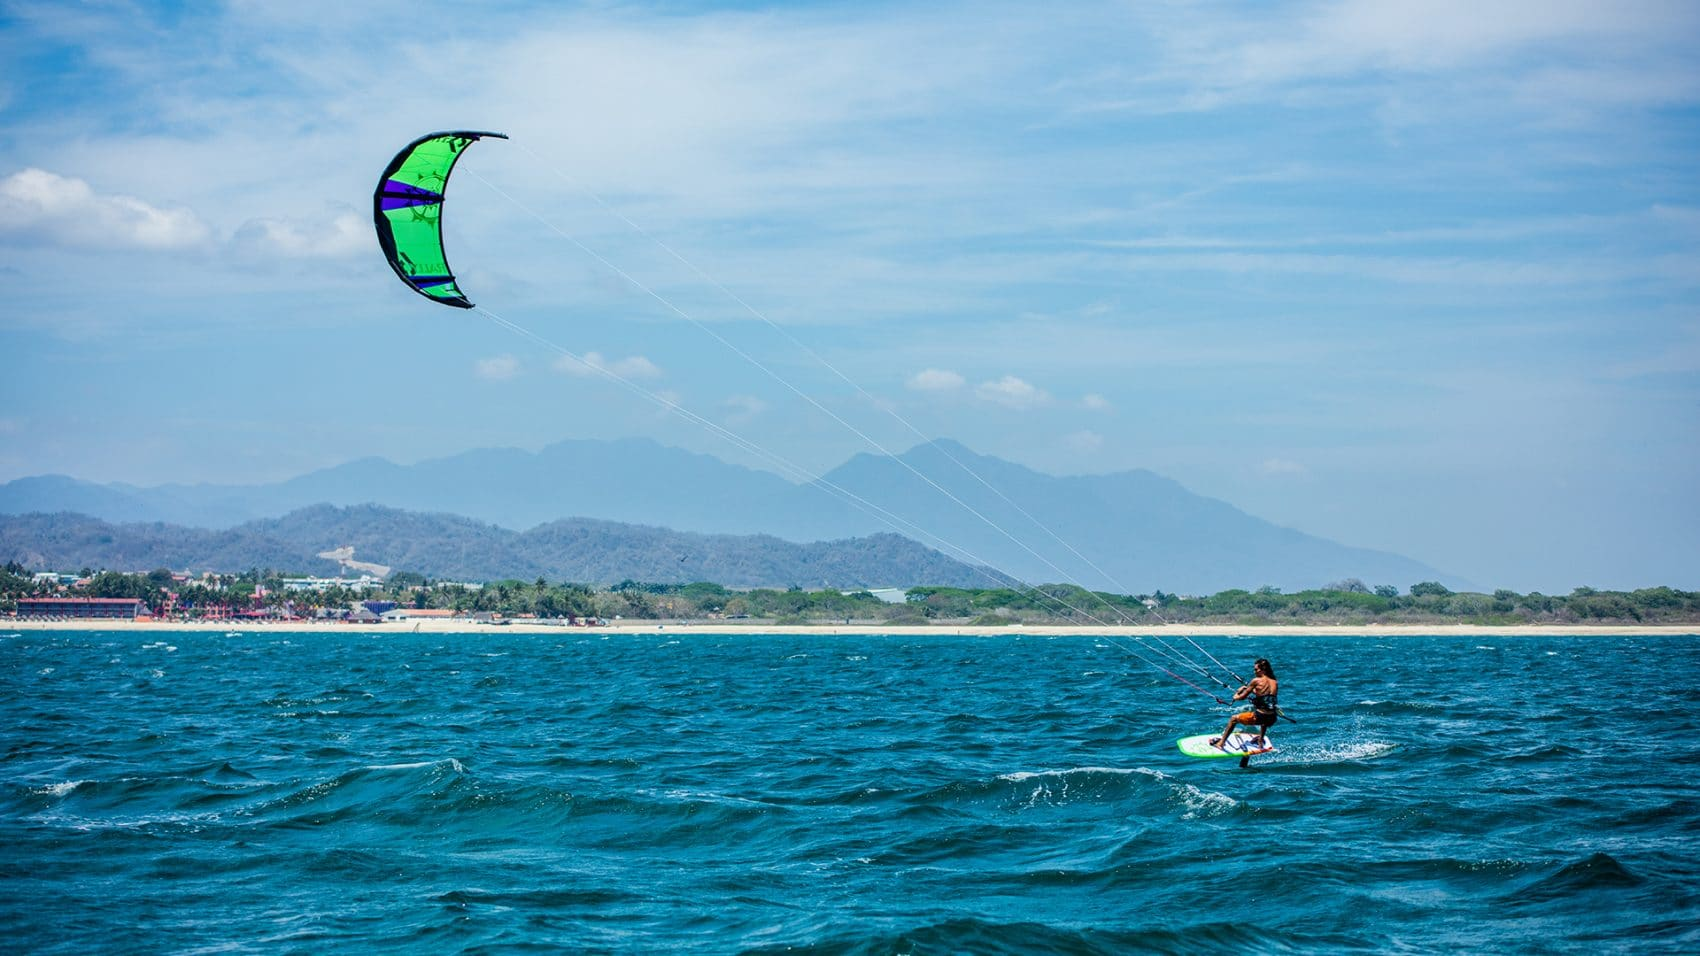 Kite surfing on the Pacific Ocean in Riviera Nayarit